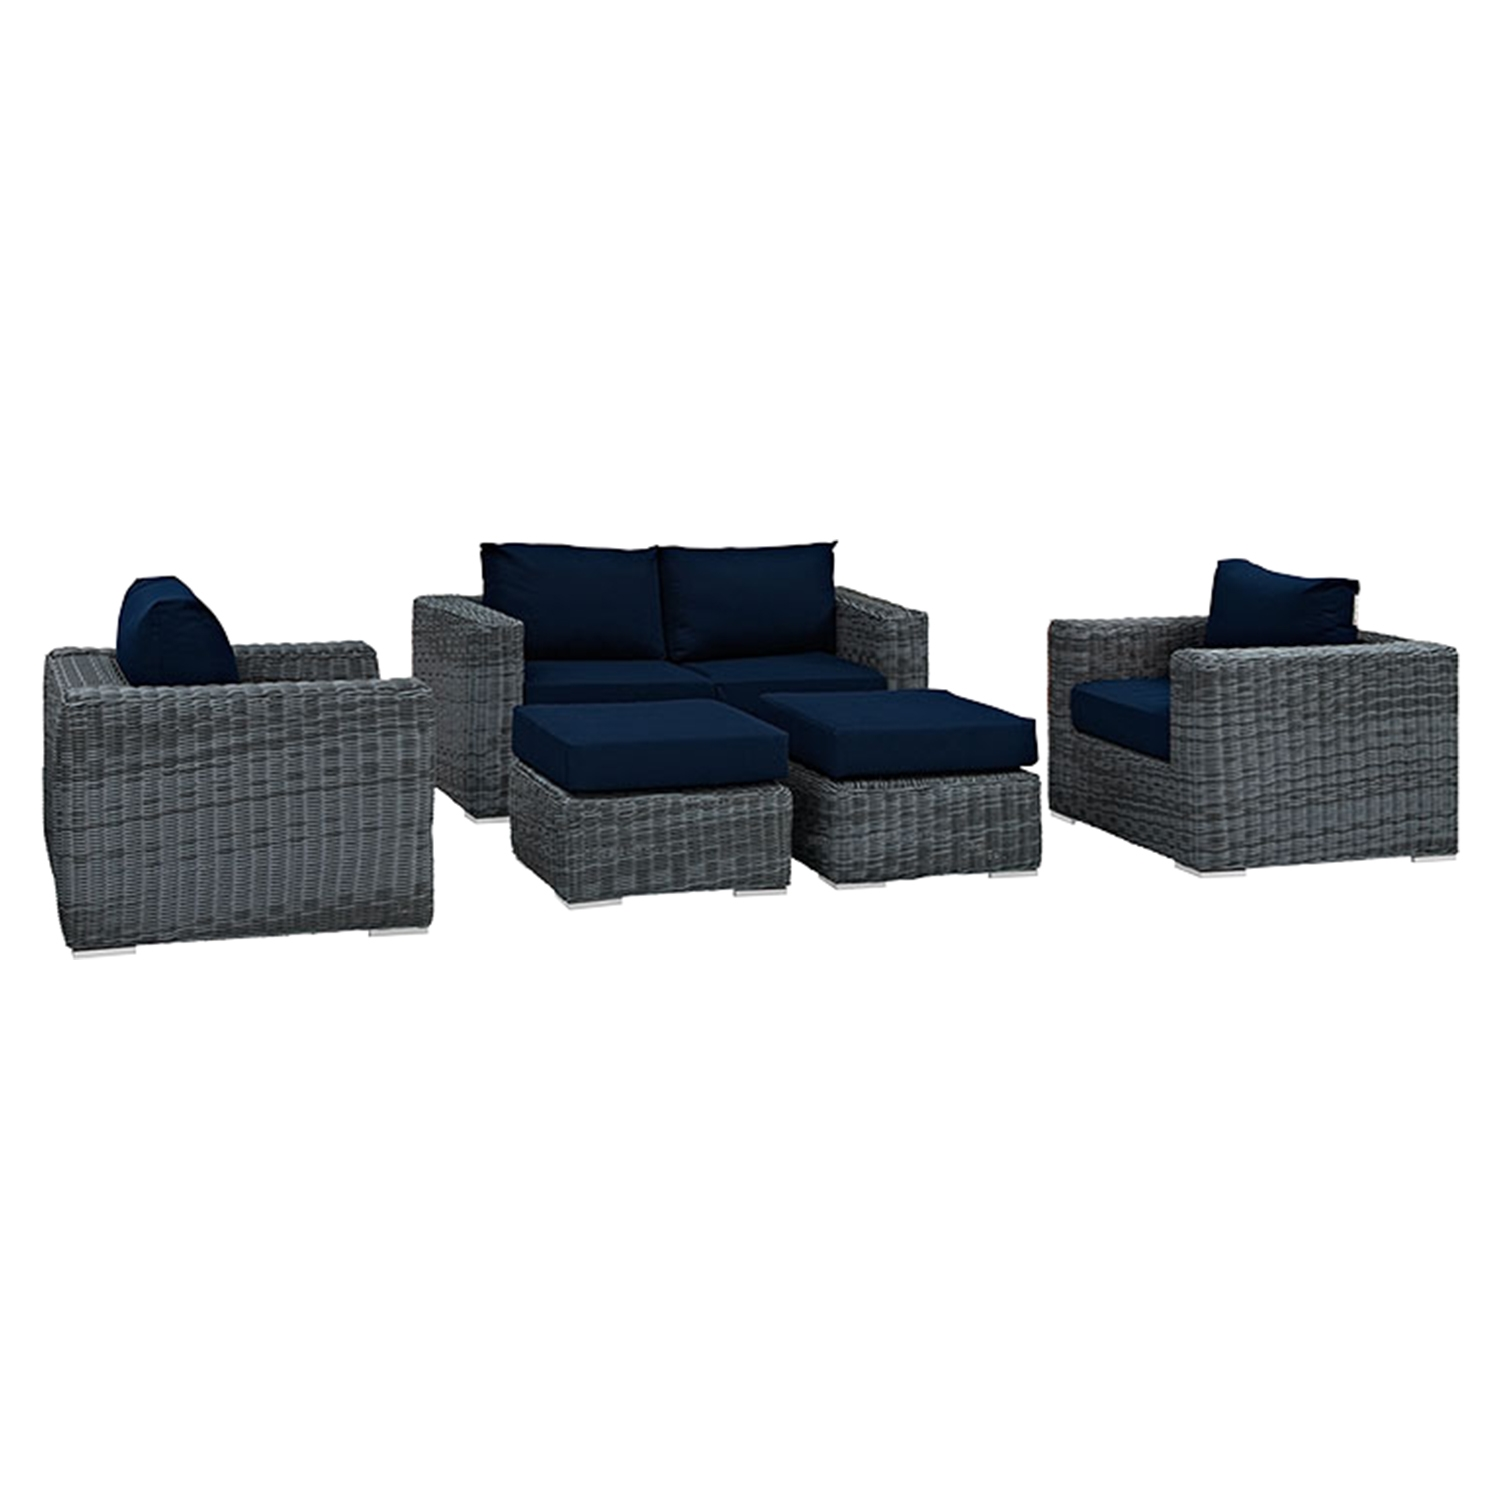 Summon 5 Pieces Outdoor Patio Sofa Set - Sunbrella Canvas Navy - EEI-1893-GRY-NAV-SET